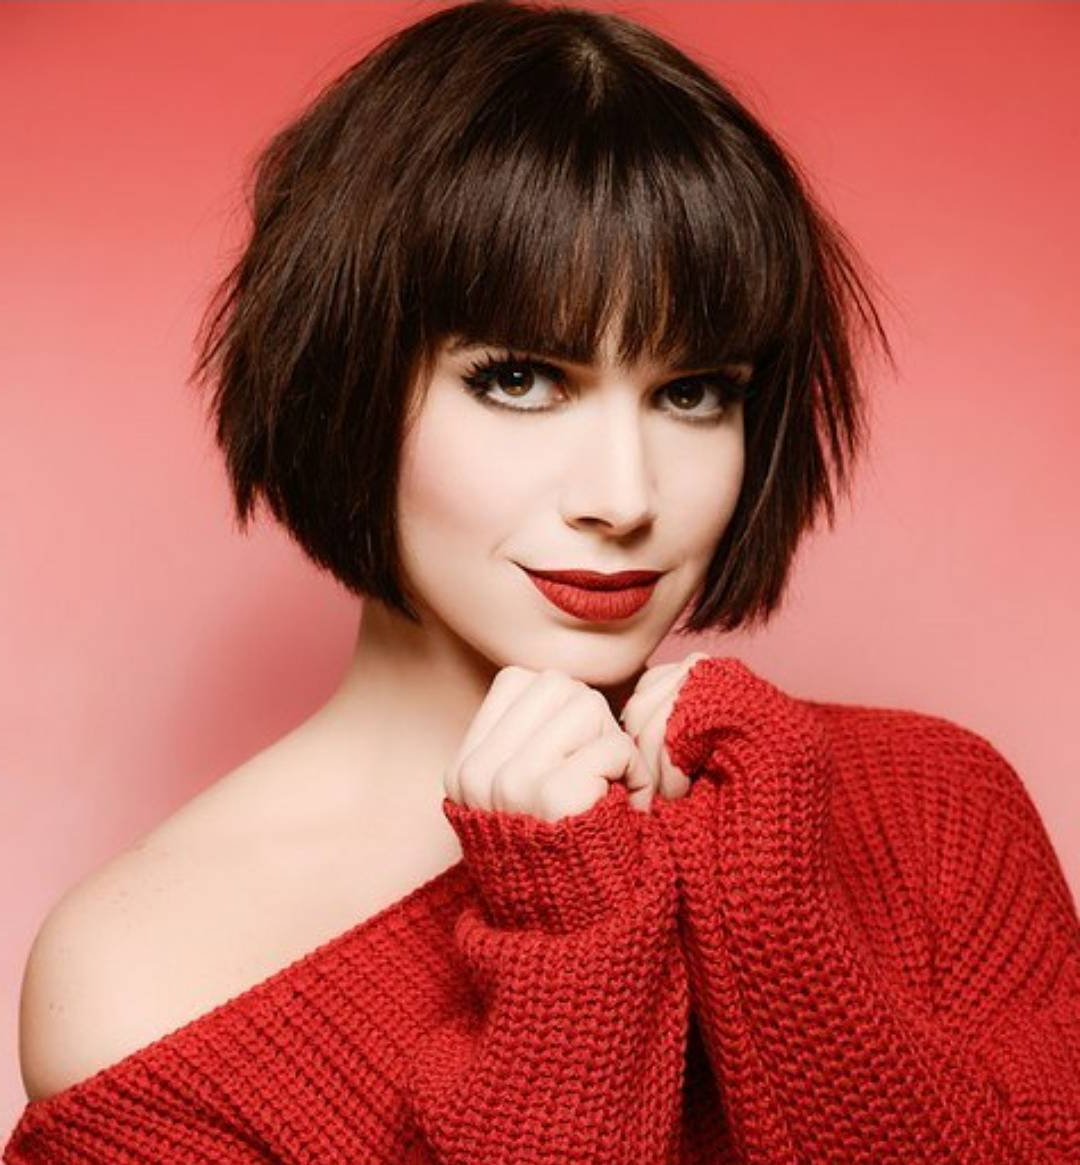 10 Chic Short Bob Haircuts That Balance Your Face Shape! – Short Intended For Symmetrical Short Haircuts (View 4 of 25)